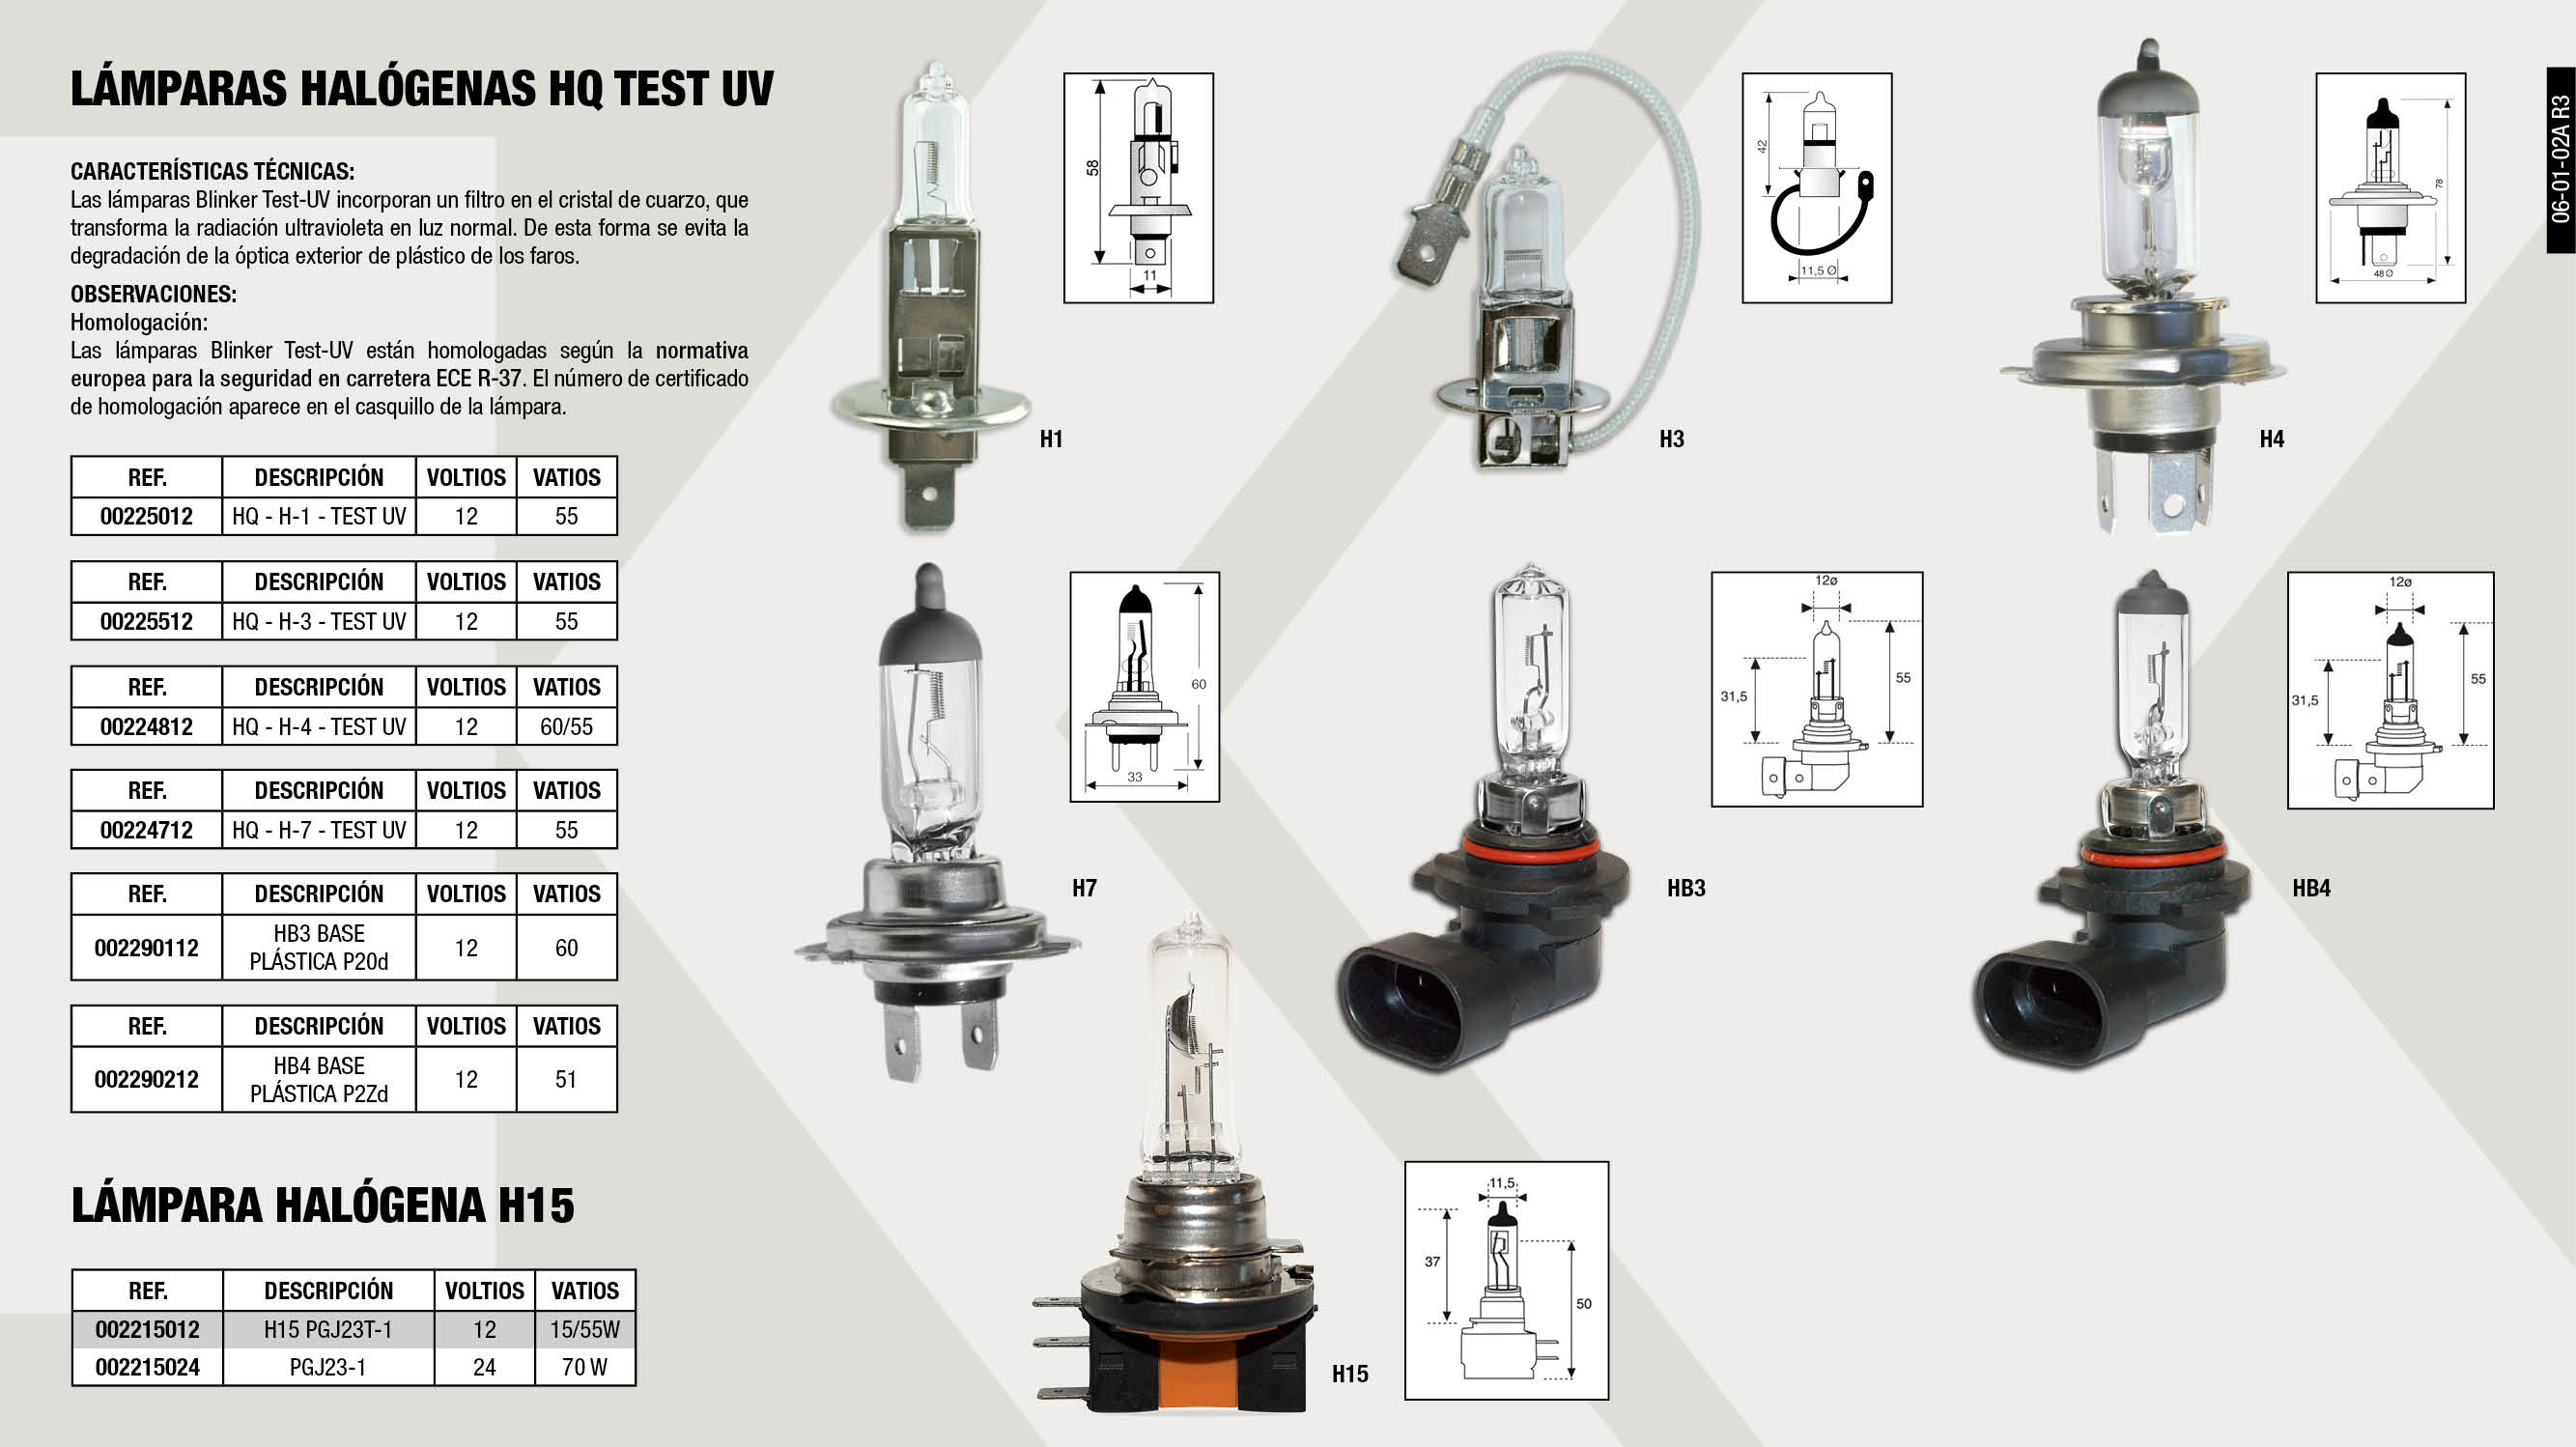 LAMPARA HB4 12V 51W P22D                                    ,  									LAMPARA HQ H4 HALOGENA 12V 60/55W-TEST UV                   ,  									LAMPARA HB3 12V 60W P20D                                    ,  									LAMPARA HQ H3 HALOGENA TEST UV 12V 55W                      ,  									LAMPARA HQ H1 HALOGENA TEST UV 12V 55W                      ,  									LAMPARA HQ H7 HALOGENA 12V 55W-TEST UV                      ,